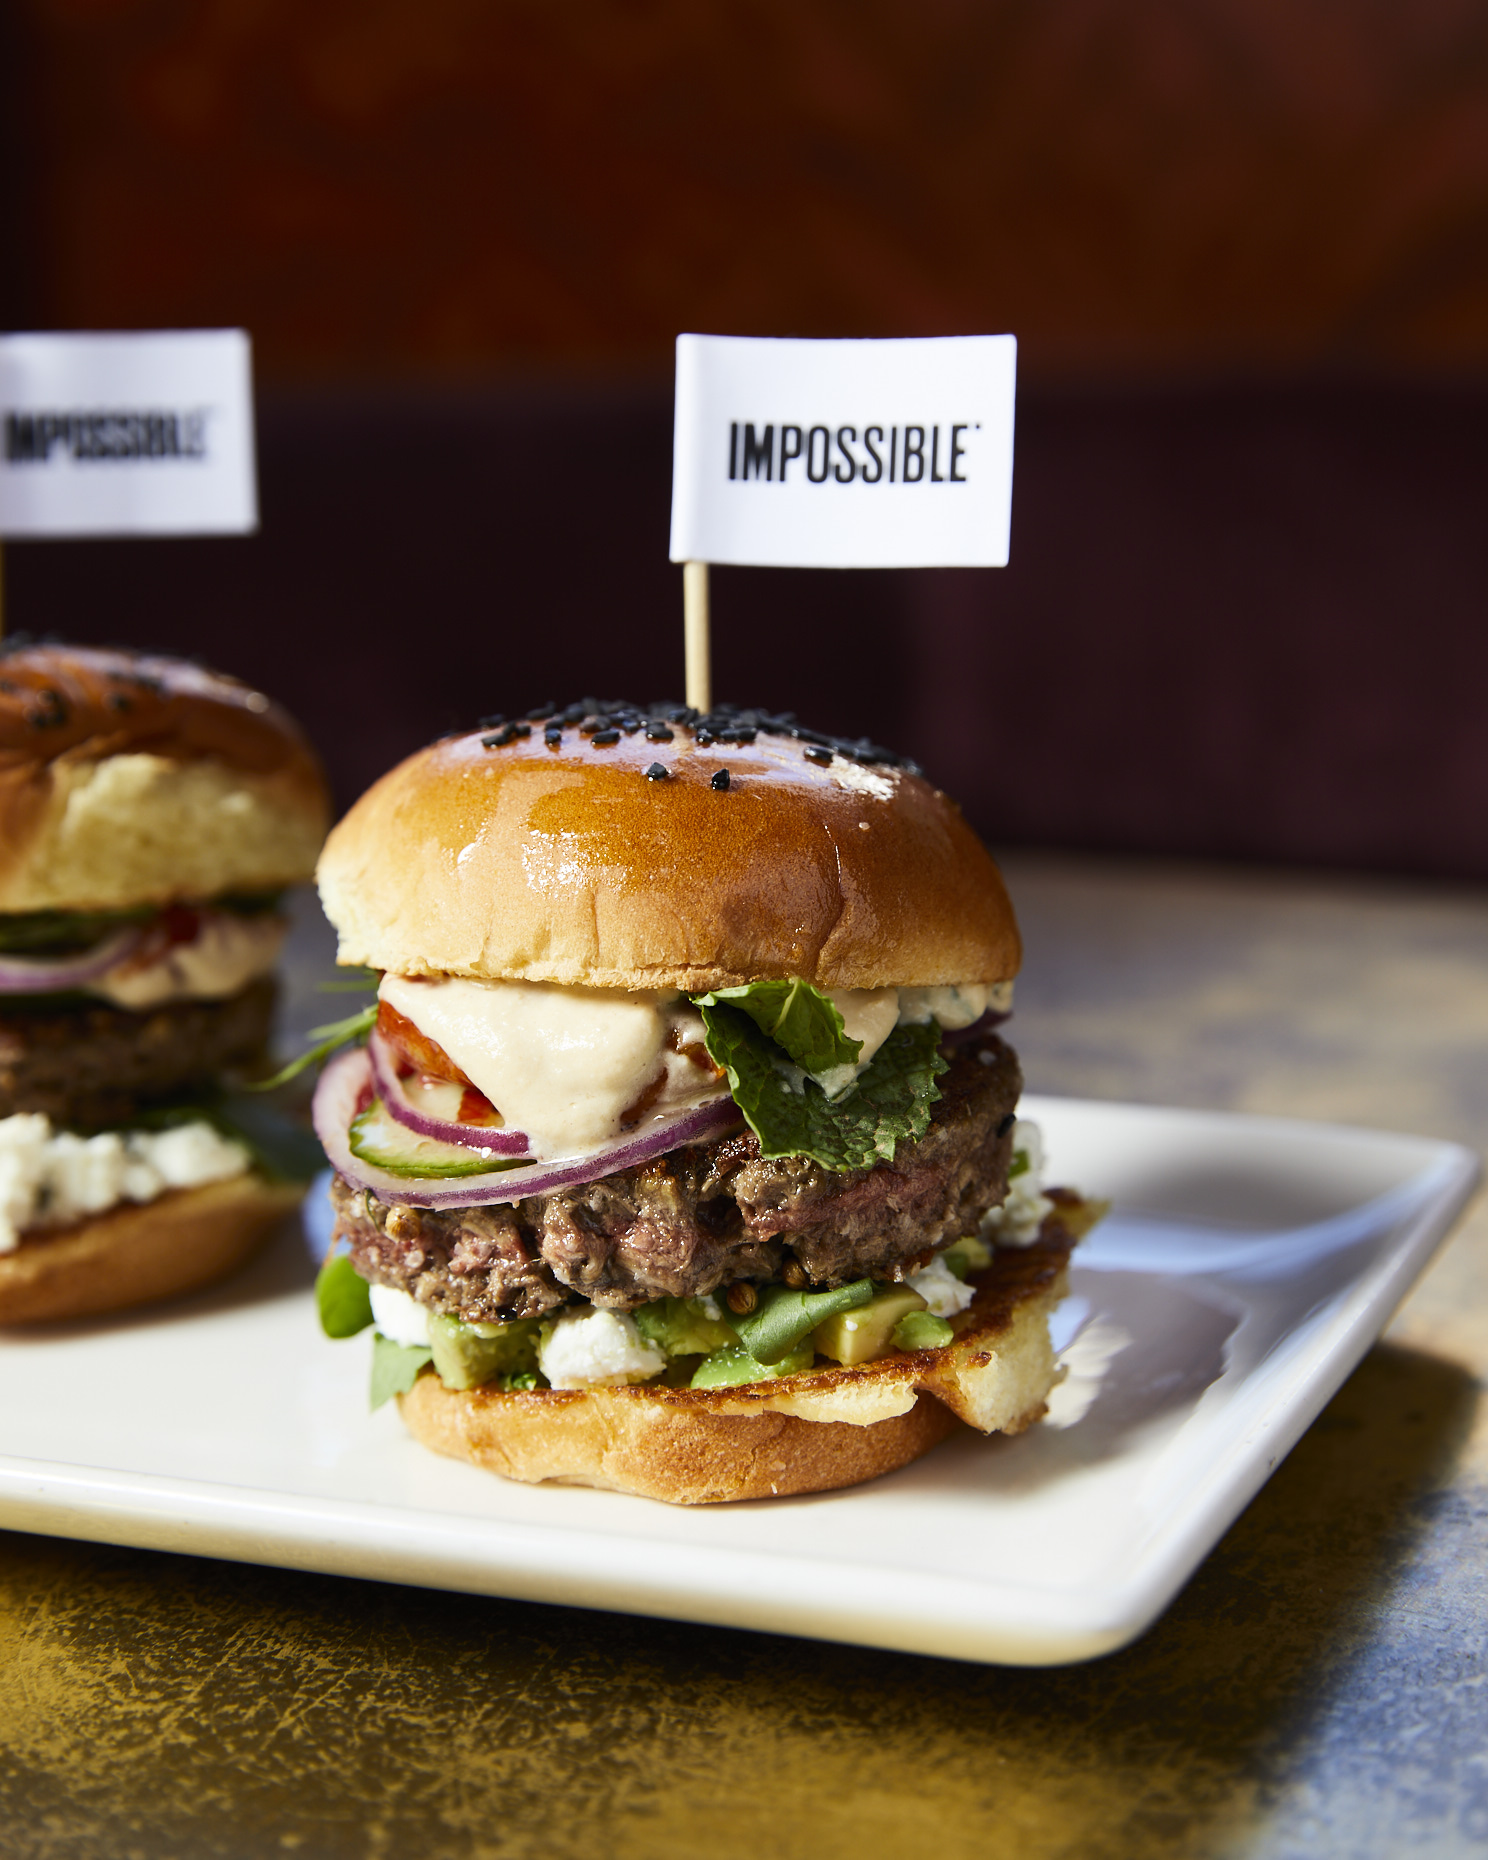 171005_JF_IMPOSSIBLE_FOODS_BURGER_008